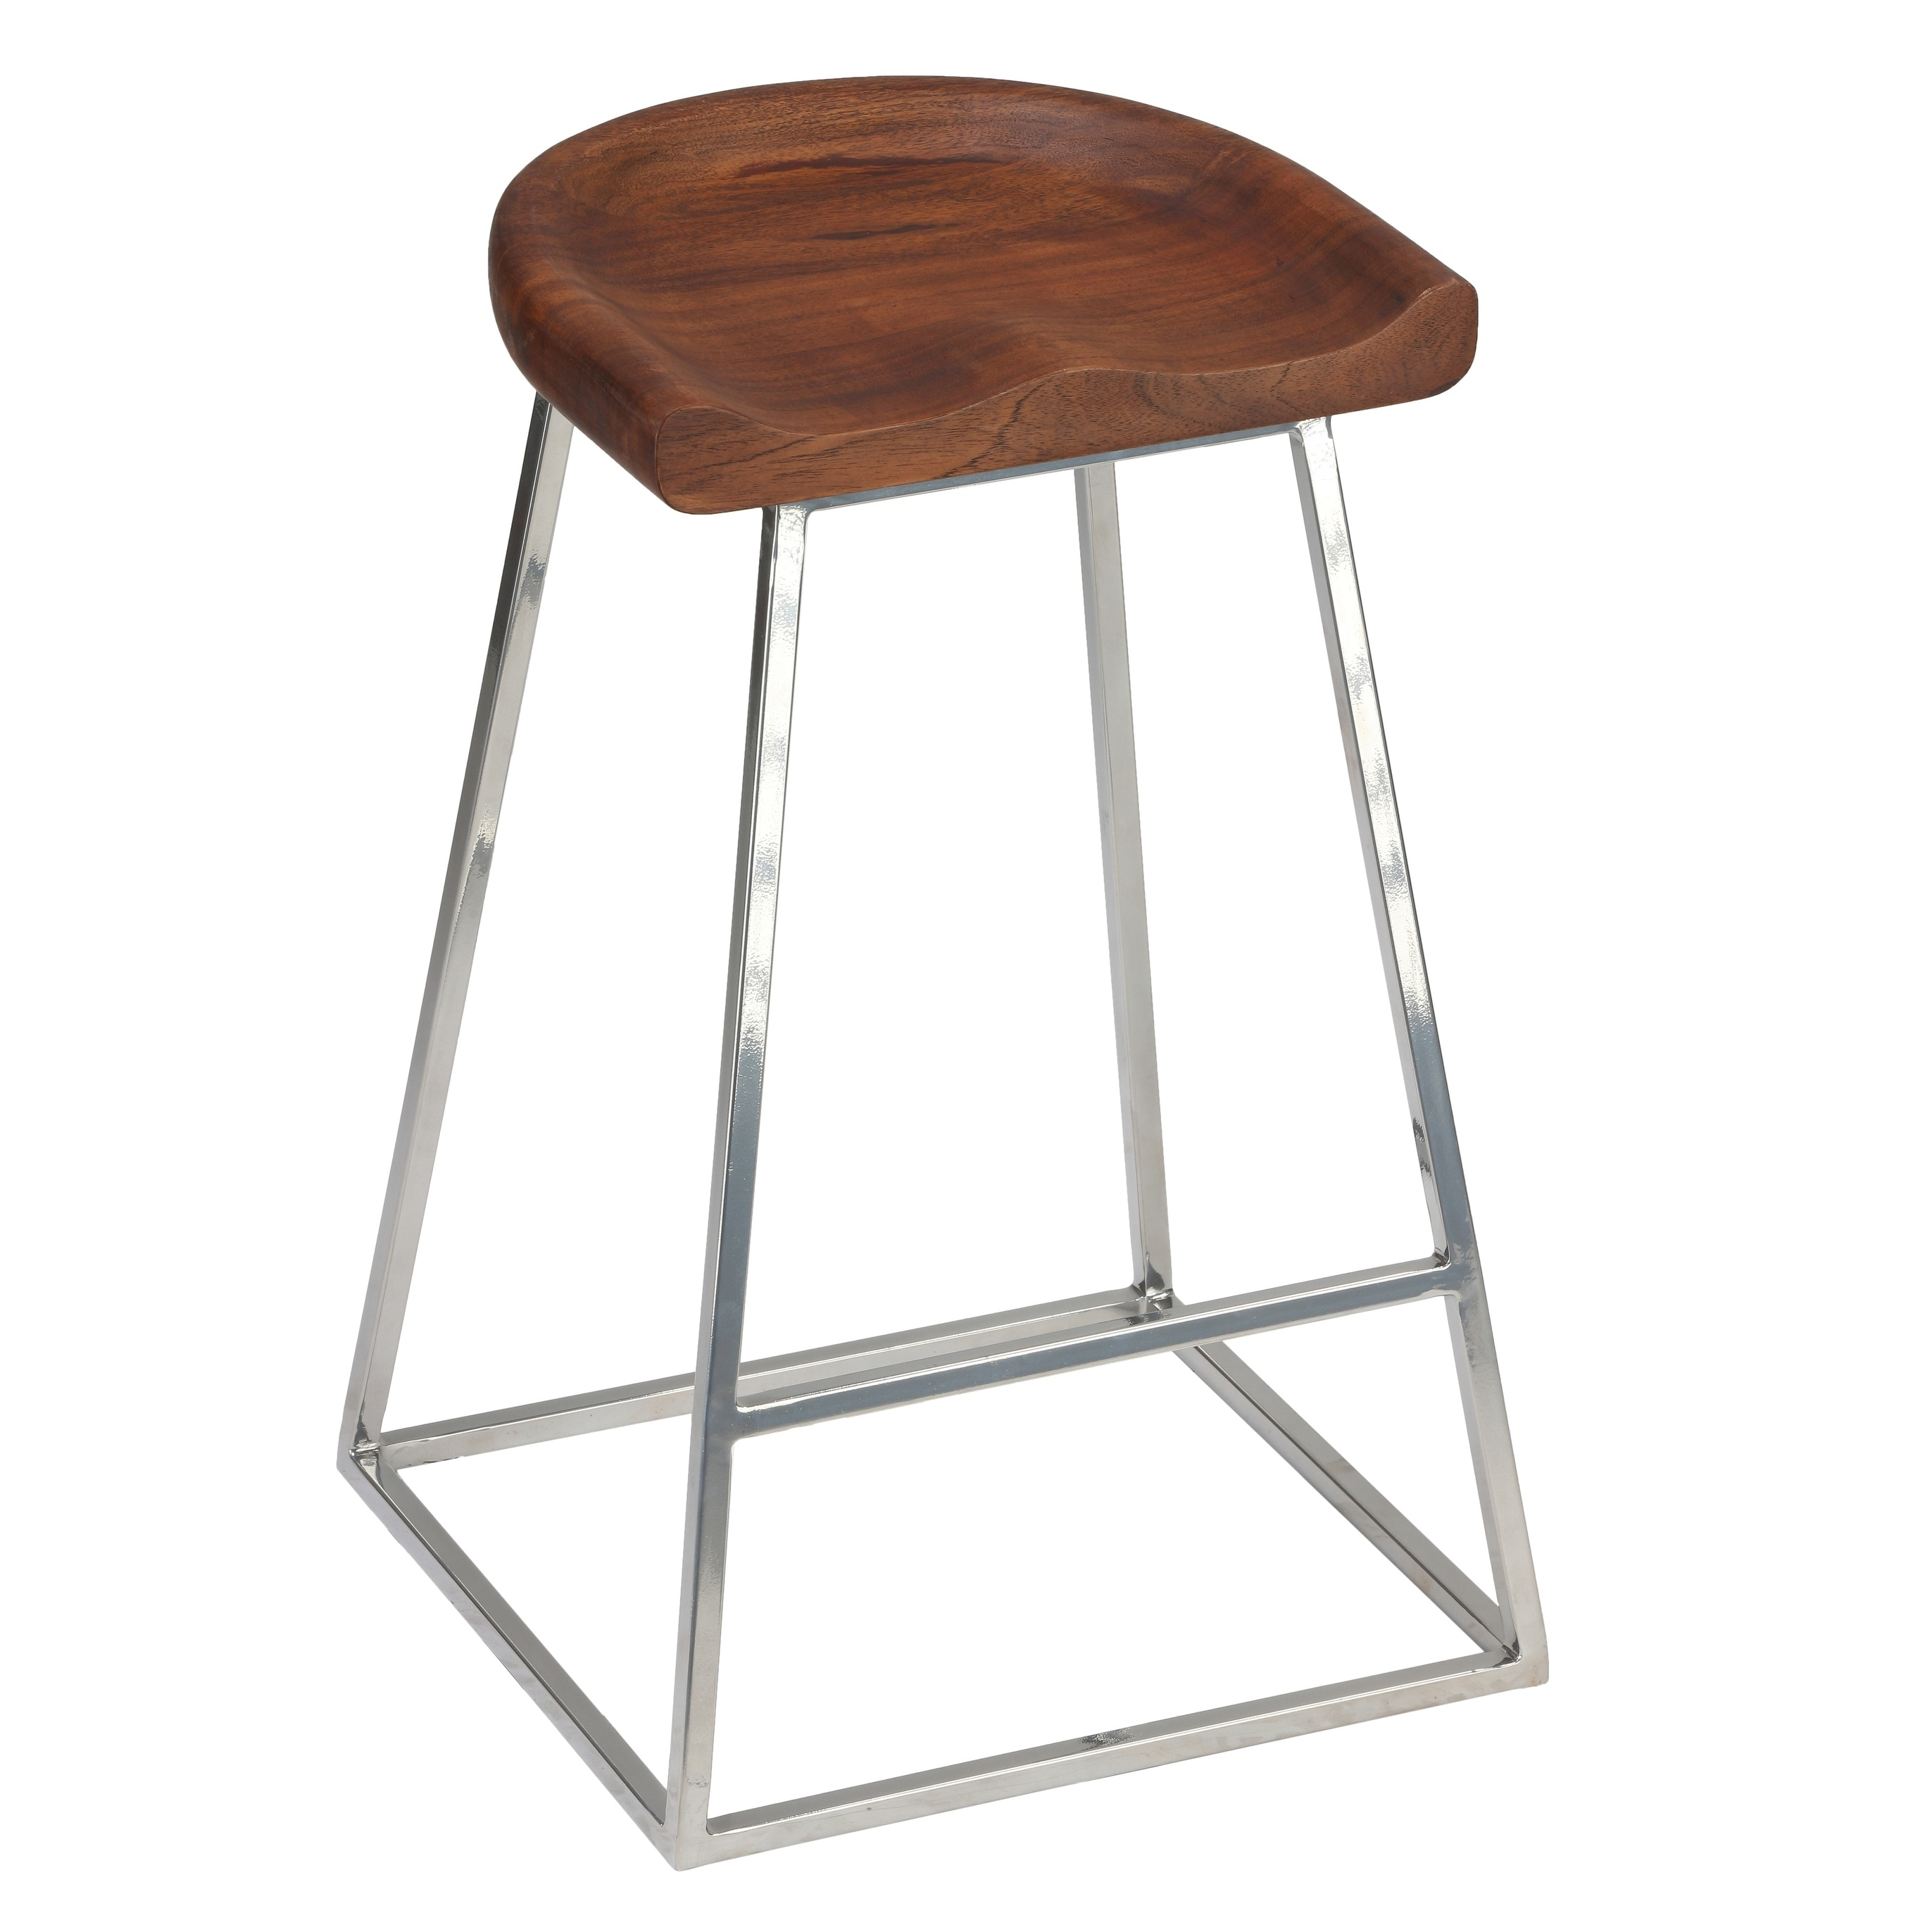 1500f655022 Shop Bare Decor Monarch Saddle Seat Counter Stool (Set of 2)